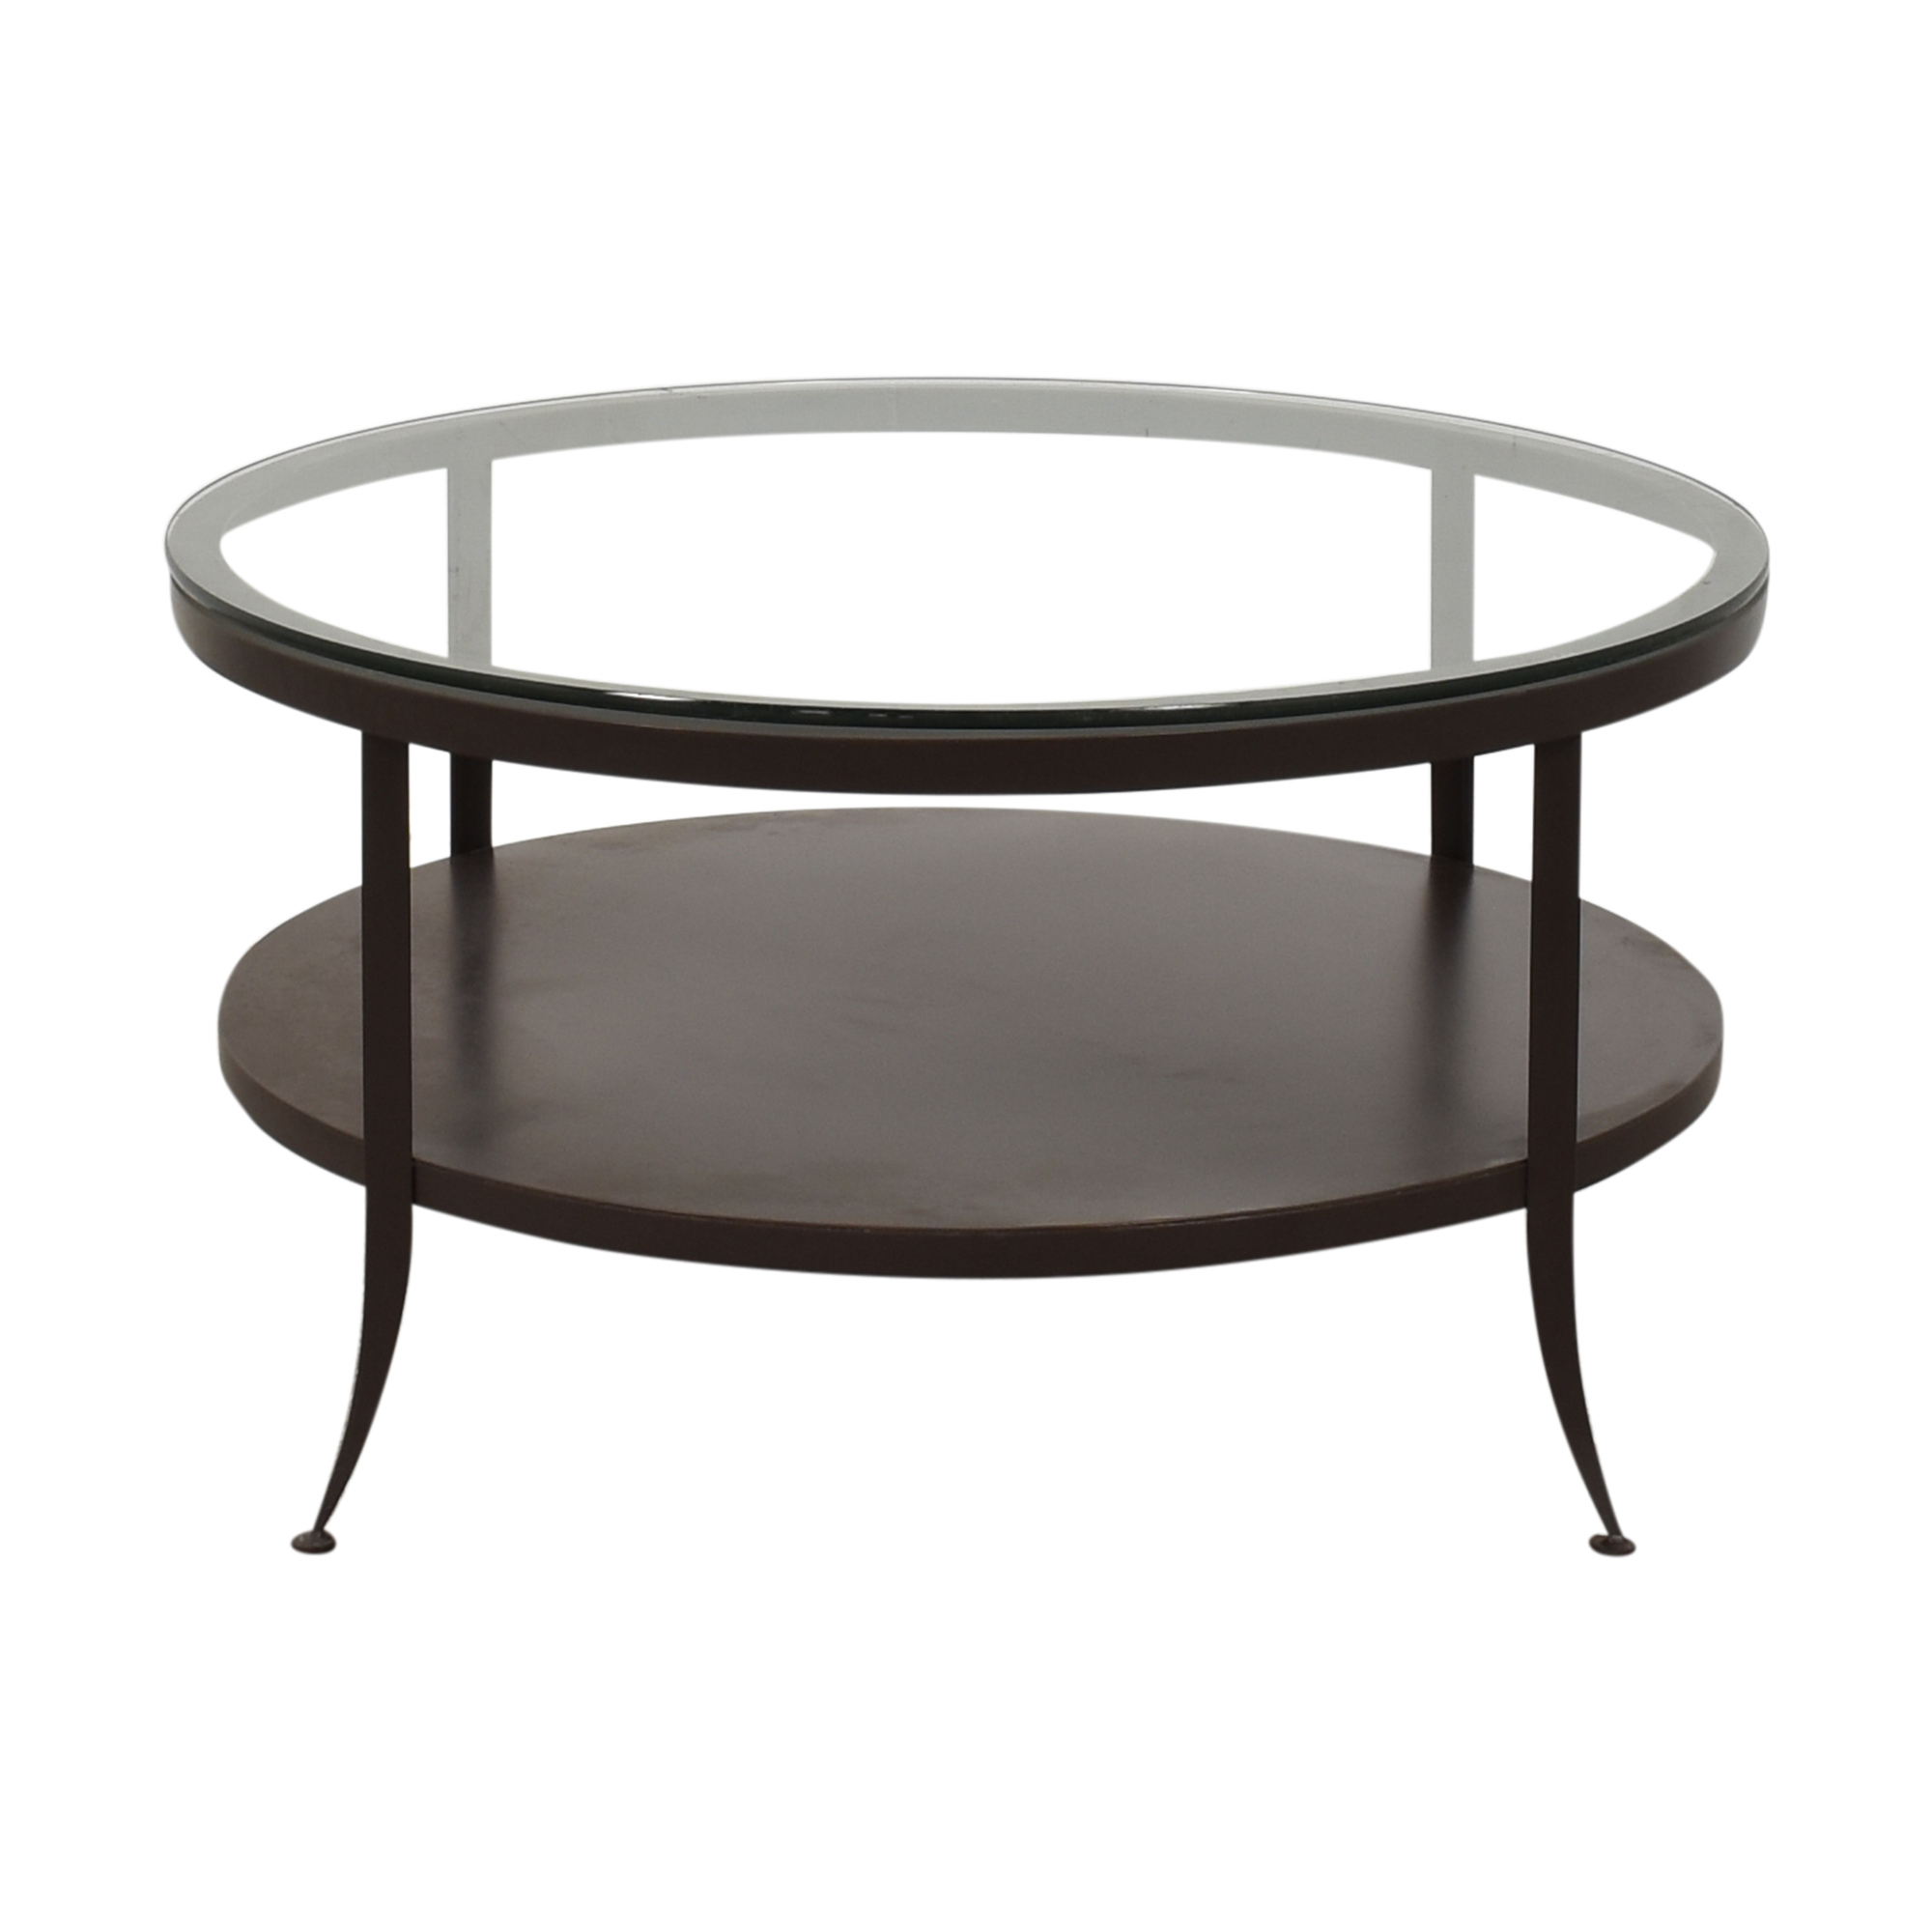 shop Crate & Barrel Clairemont Round Art Deco Coffee Table Crate & Barrel